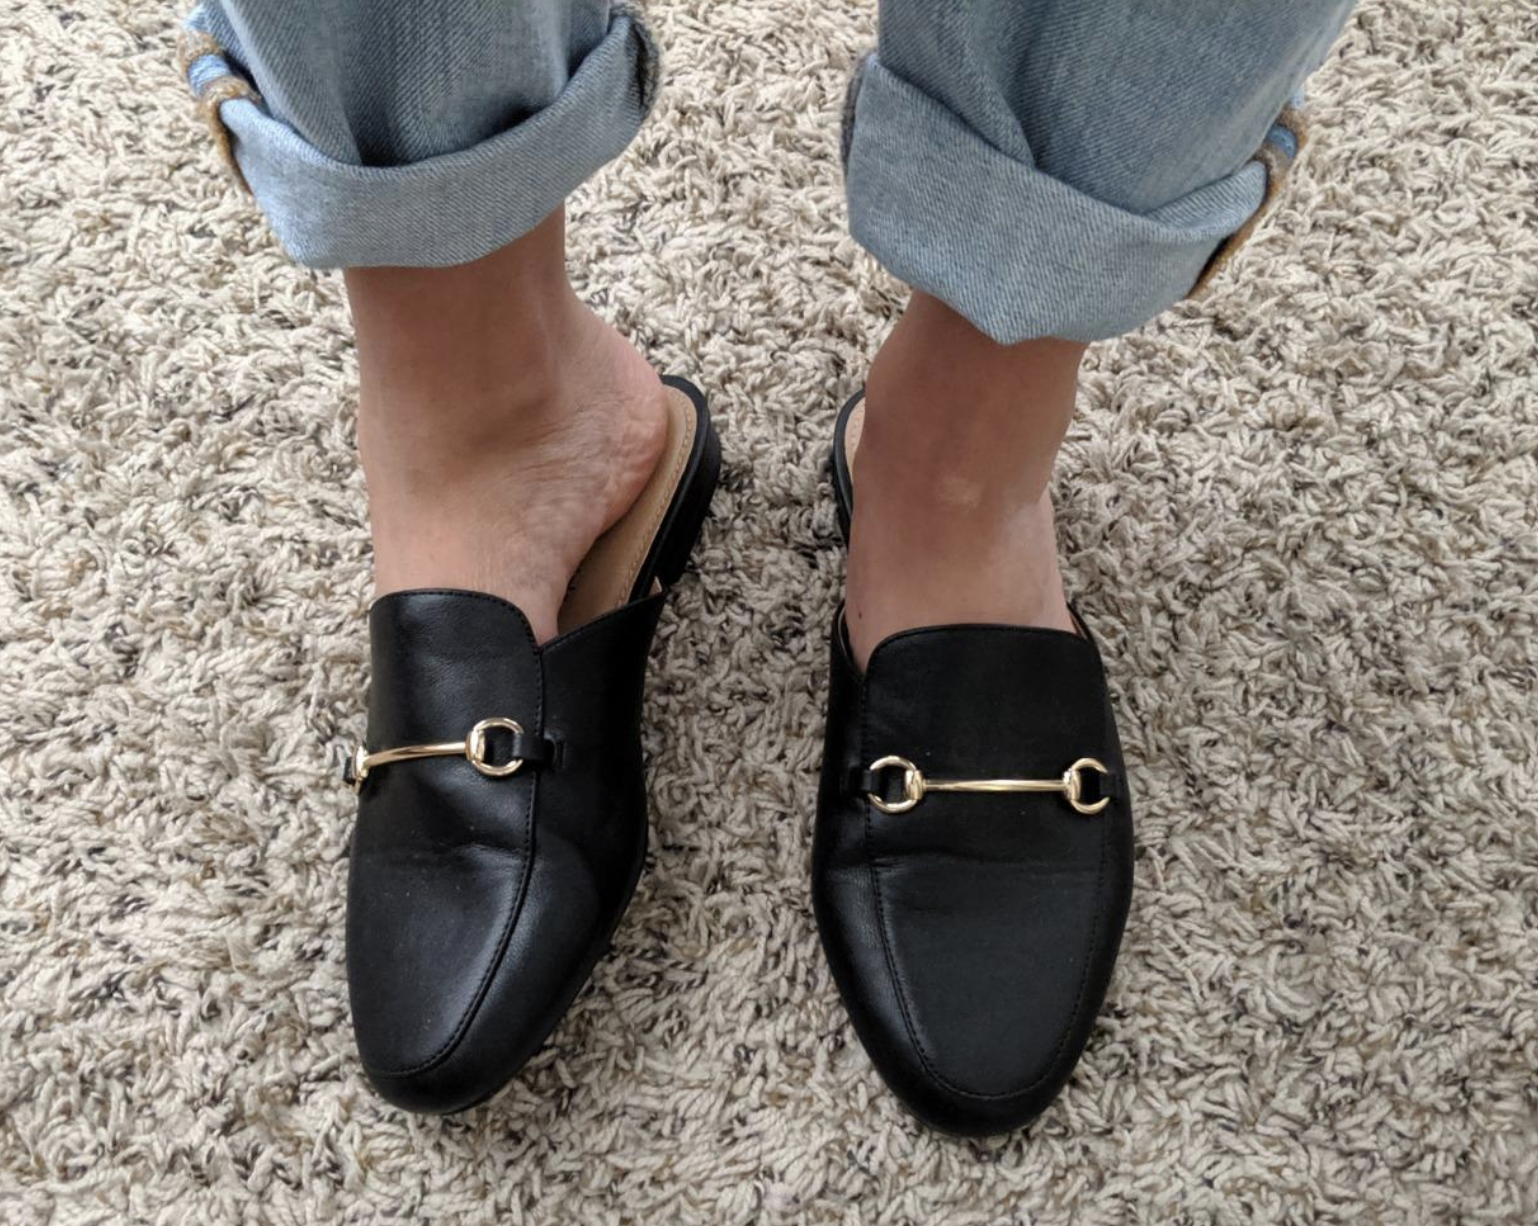 reviewer wearing the black loafers with gold chain design